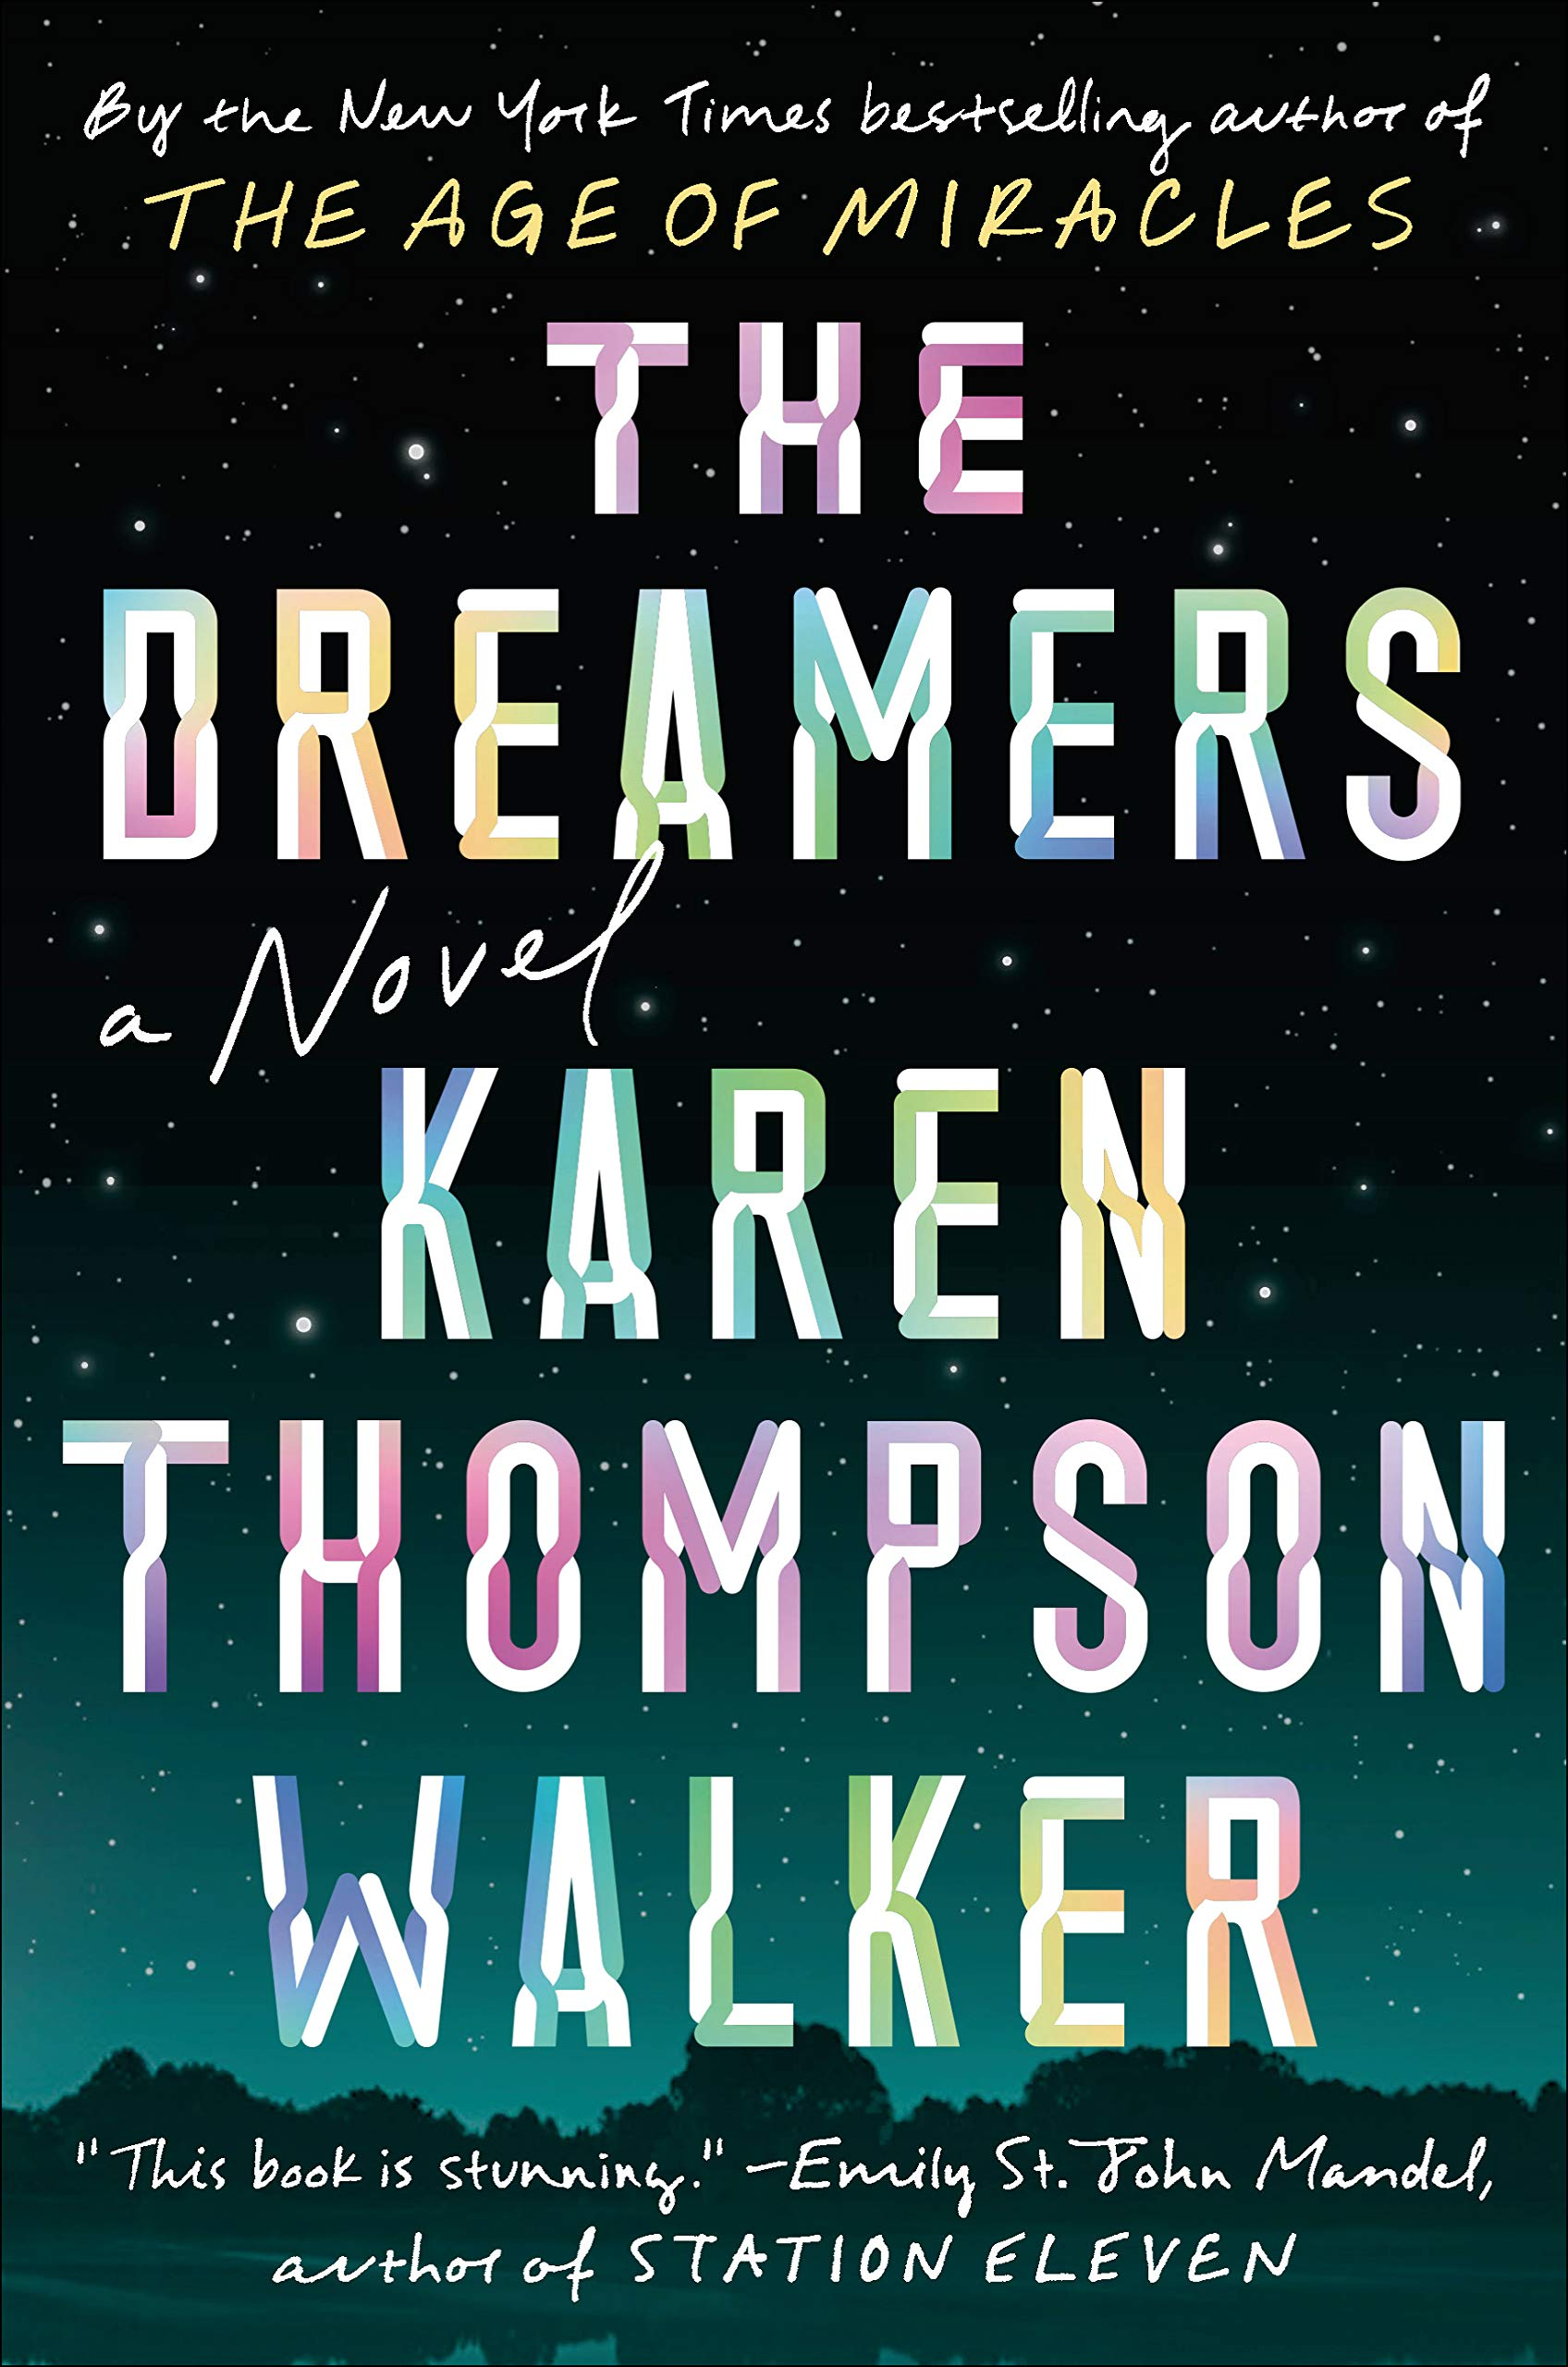 The Dreamers 2019 book releases